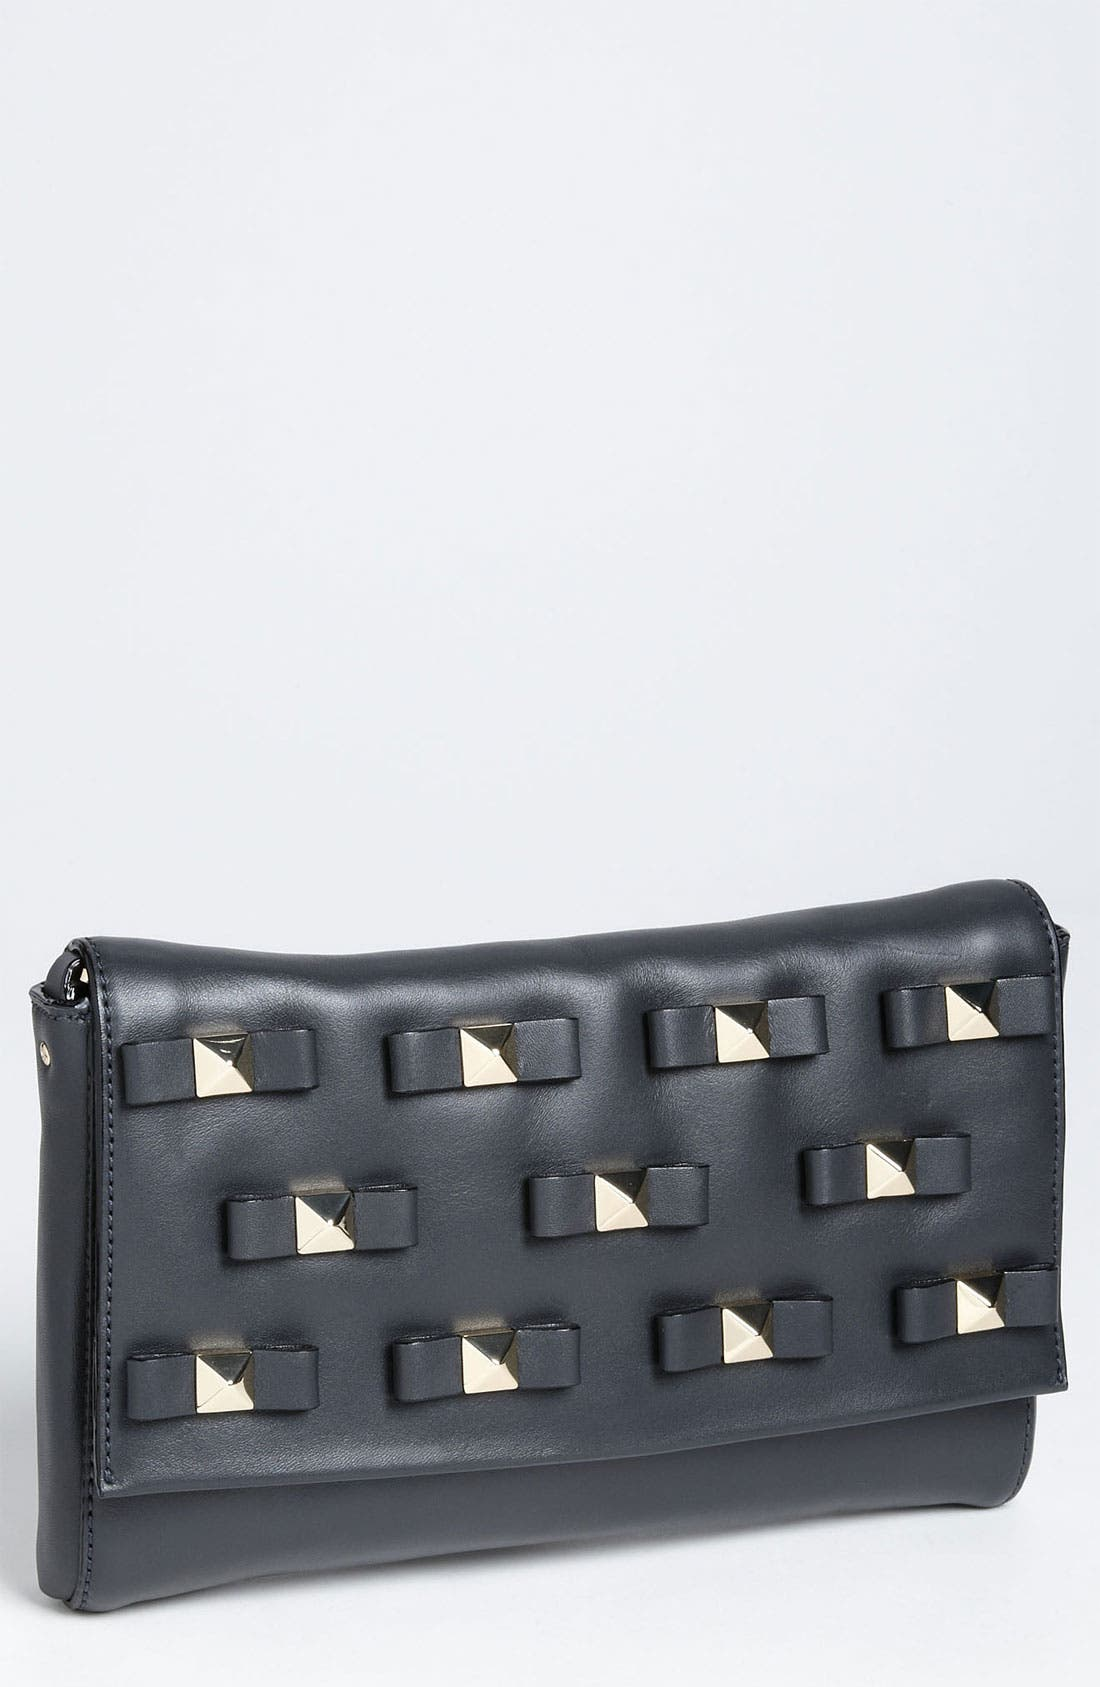 Main Image - kate spade new york 'bow terrace - felisha' clutch